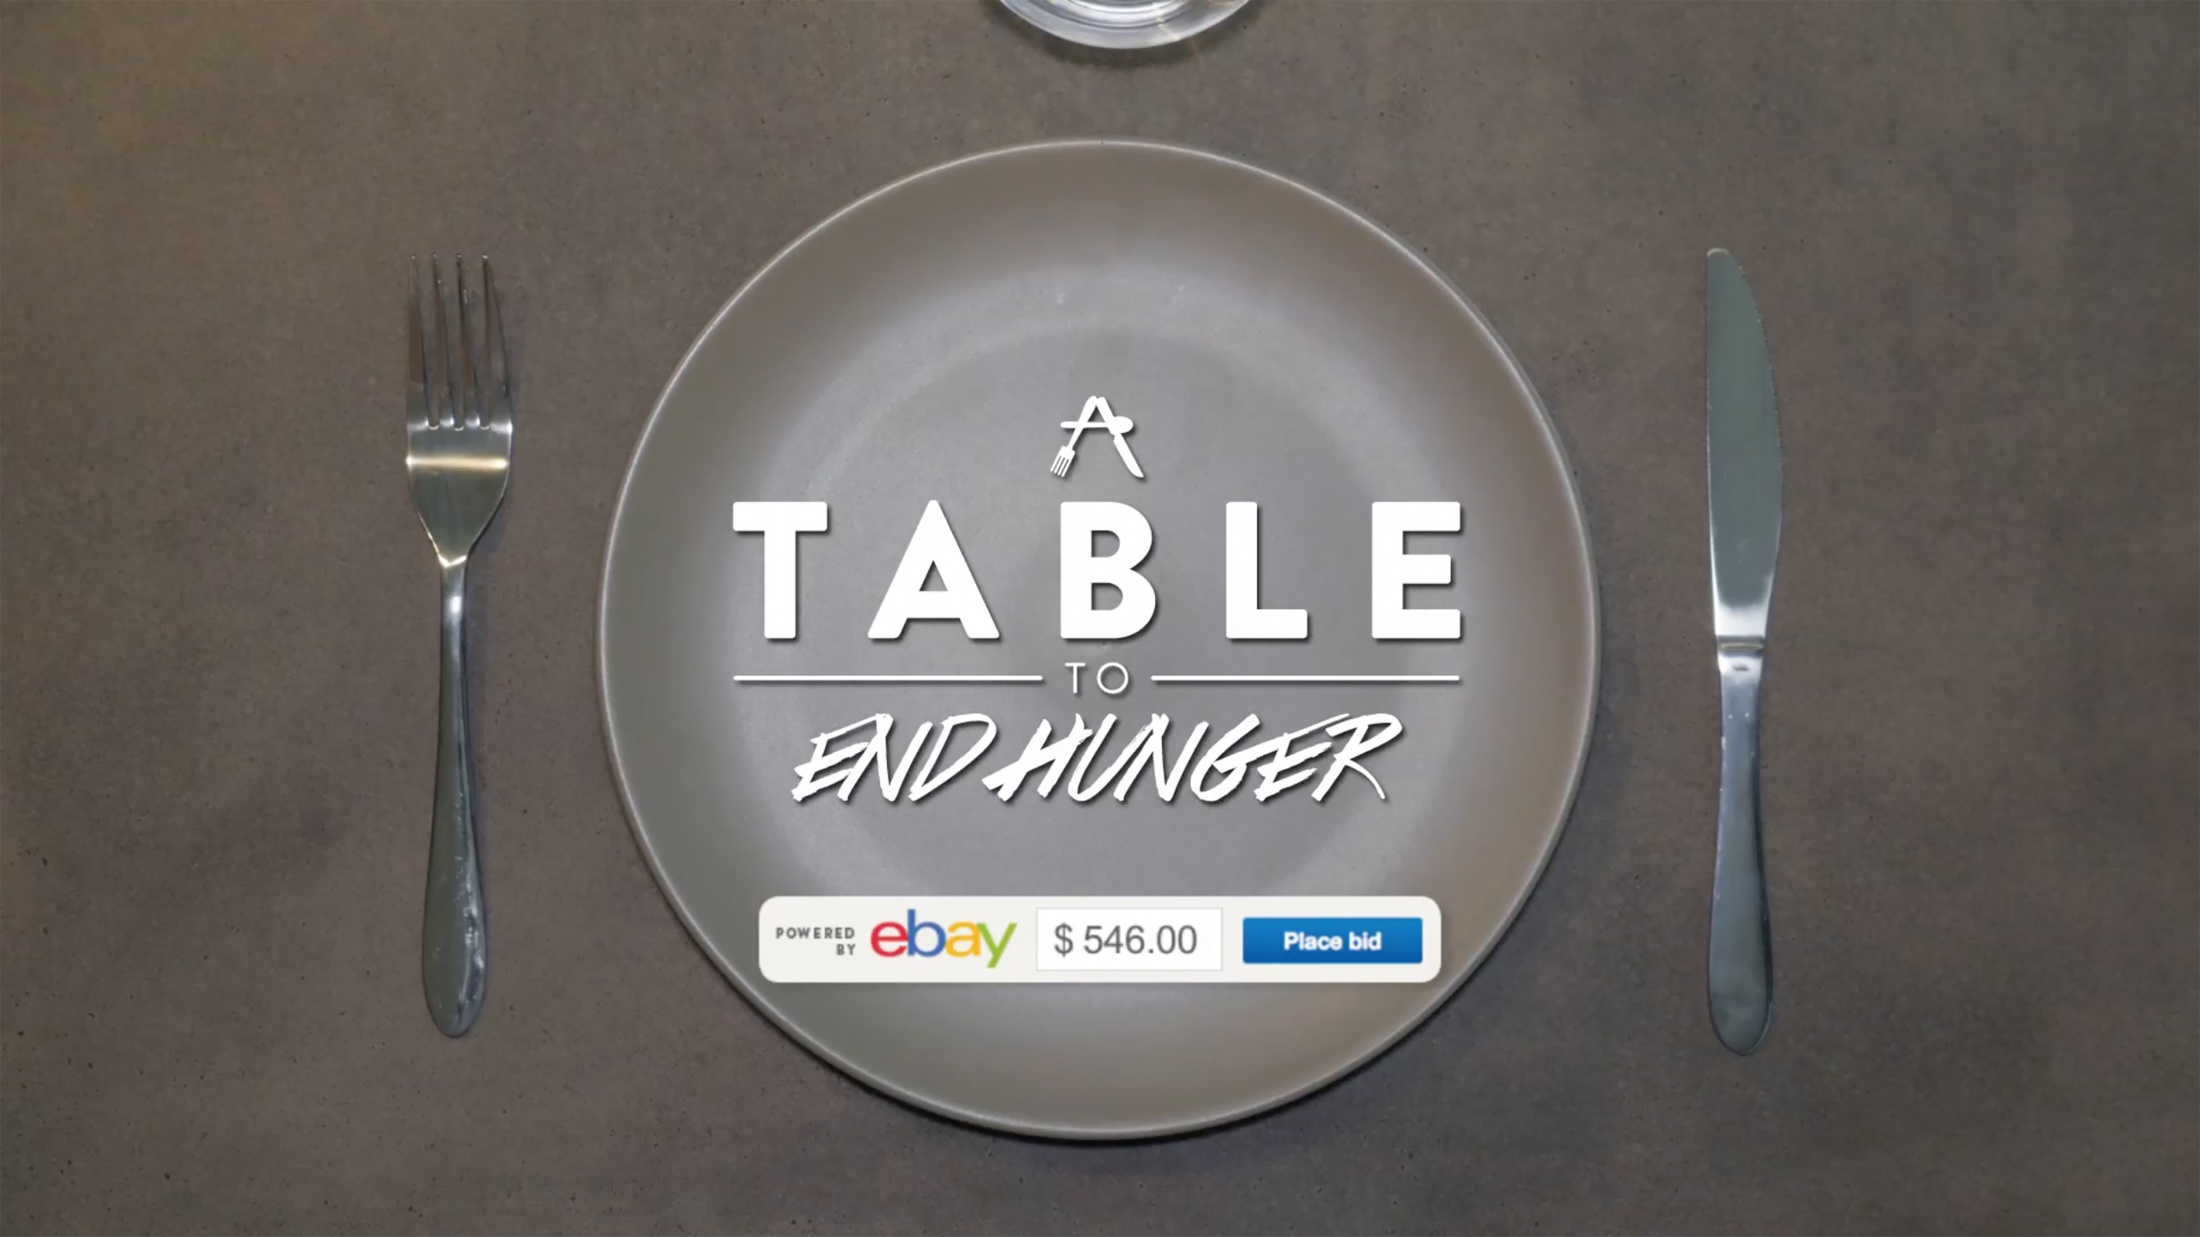 Thumbnail for A Table To End Hunger